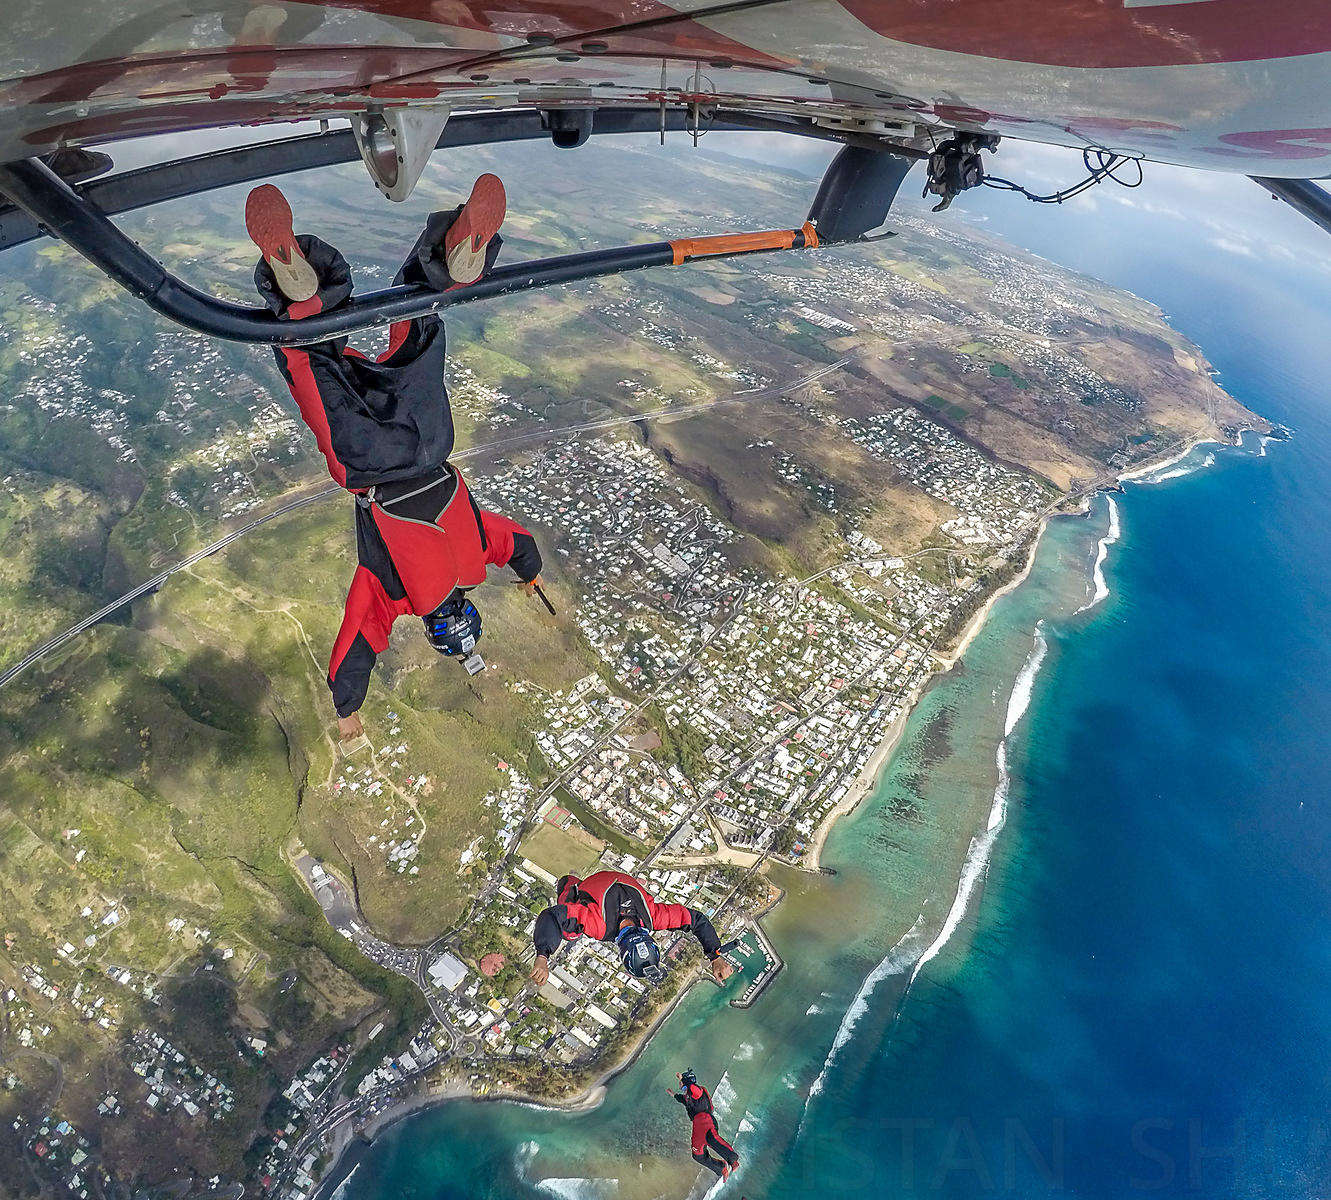 Eliot Nochez gravity boots from the Helicopter during Master Acro in La Réunion